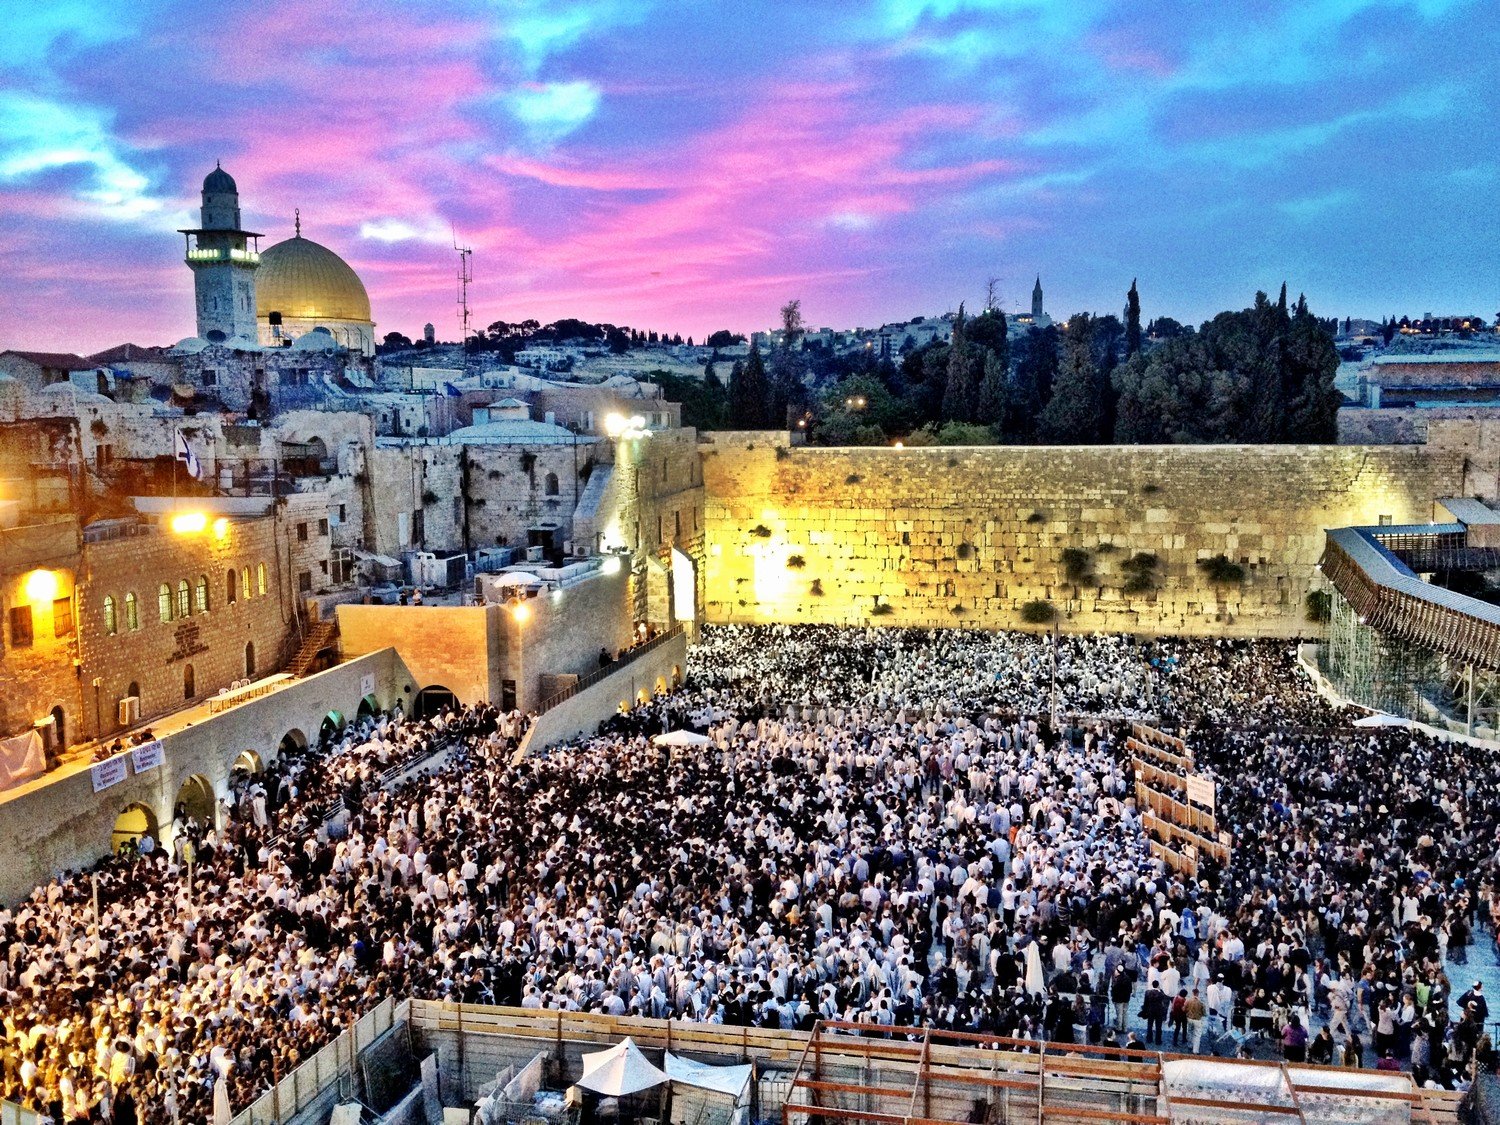 President Donald Trump officially recognized Jerusalem as Israel's capital in a 20-minute announcement on Dec. 6. Above, a gathering at the Western Wall in Jerusalem during the holiday of Shavout in 2012.